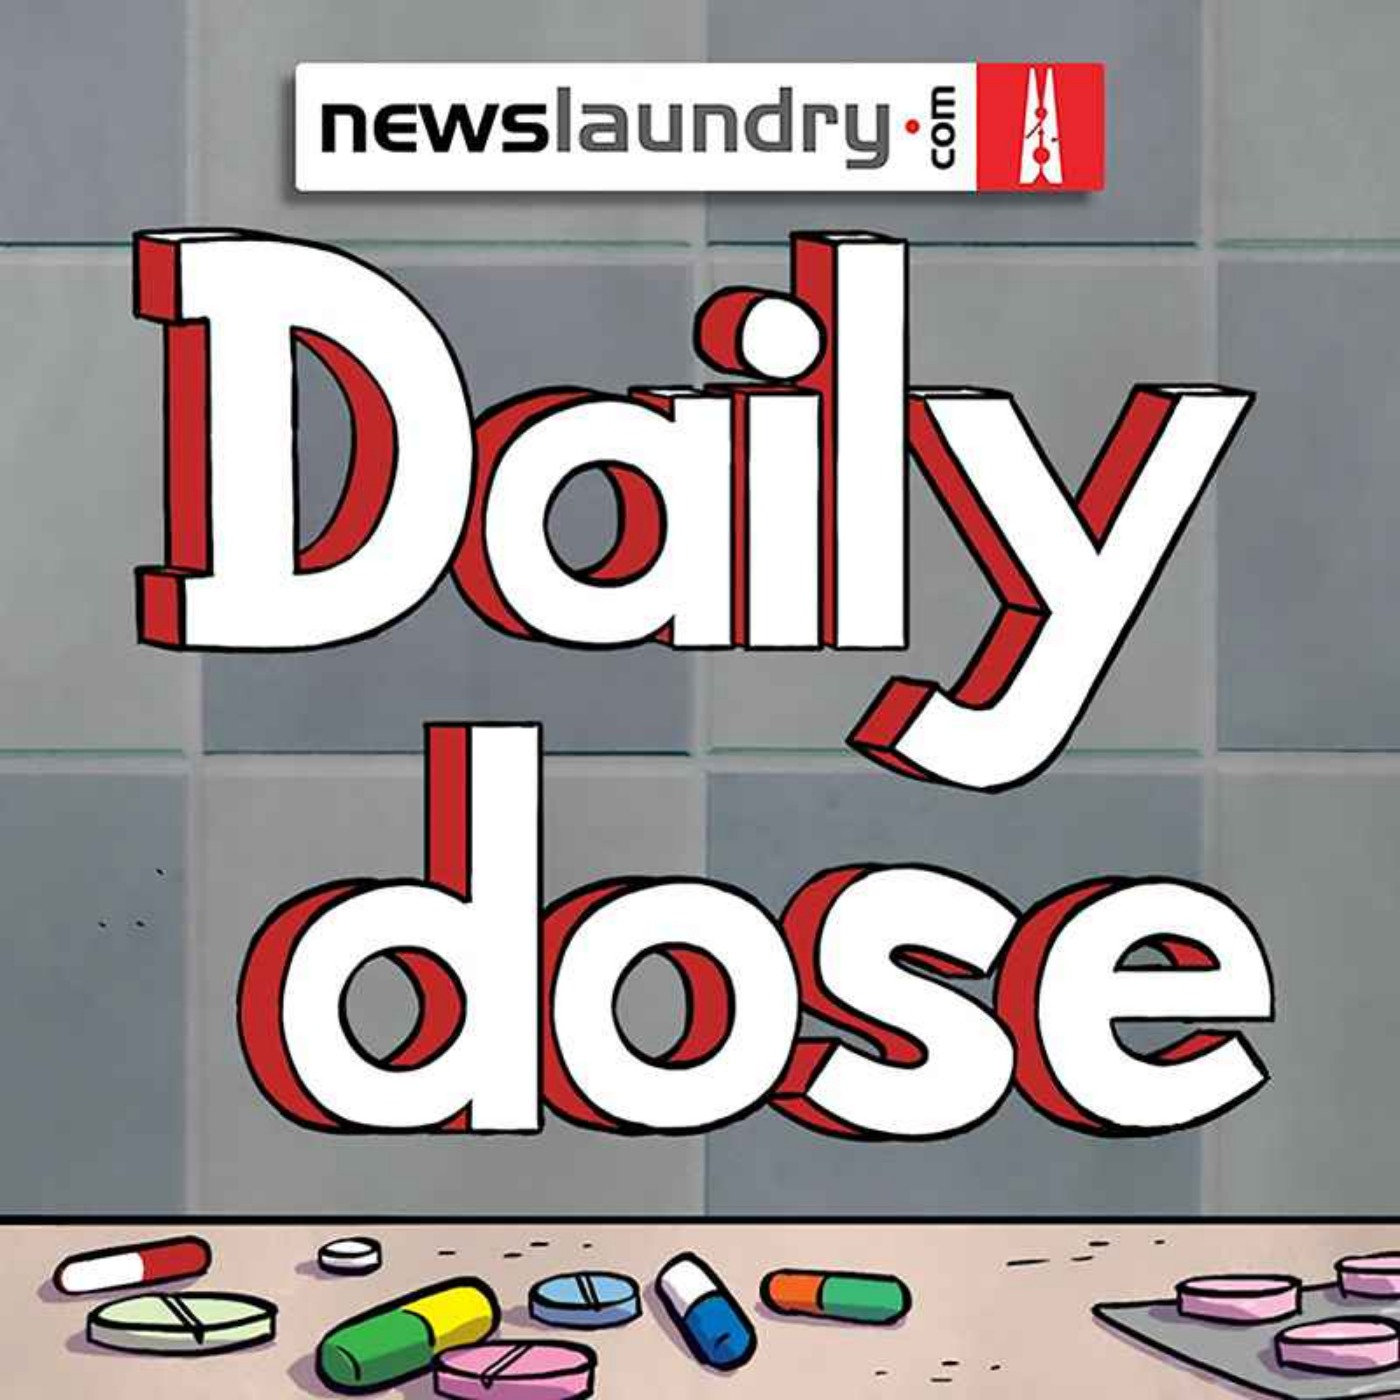 Daily Dose Ep. 562: Farmers' demands, Dalit man's murder in MP, and Darjeeling politics